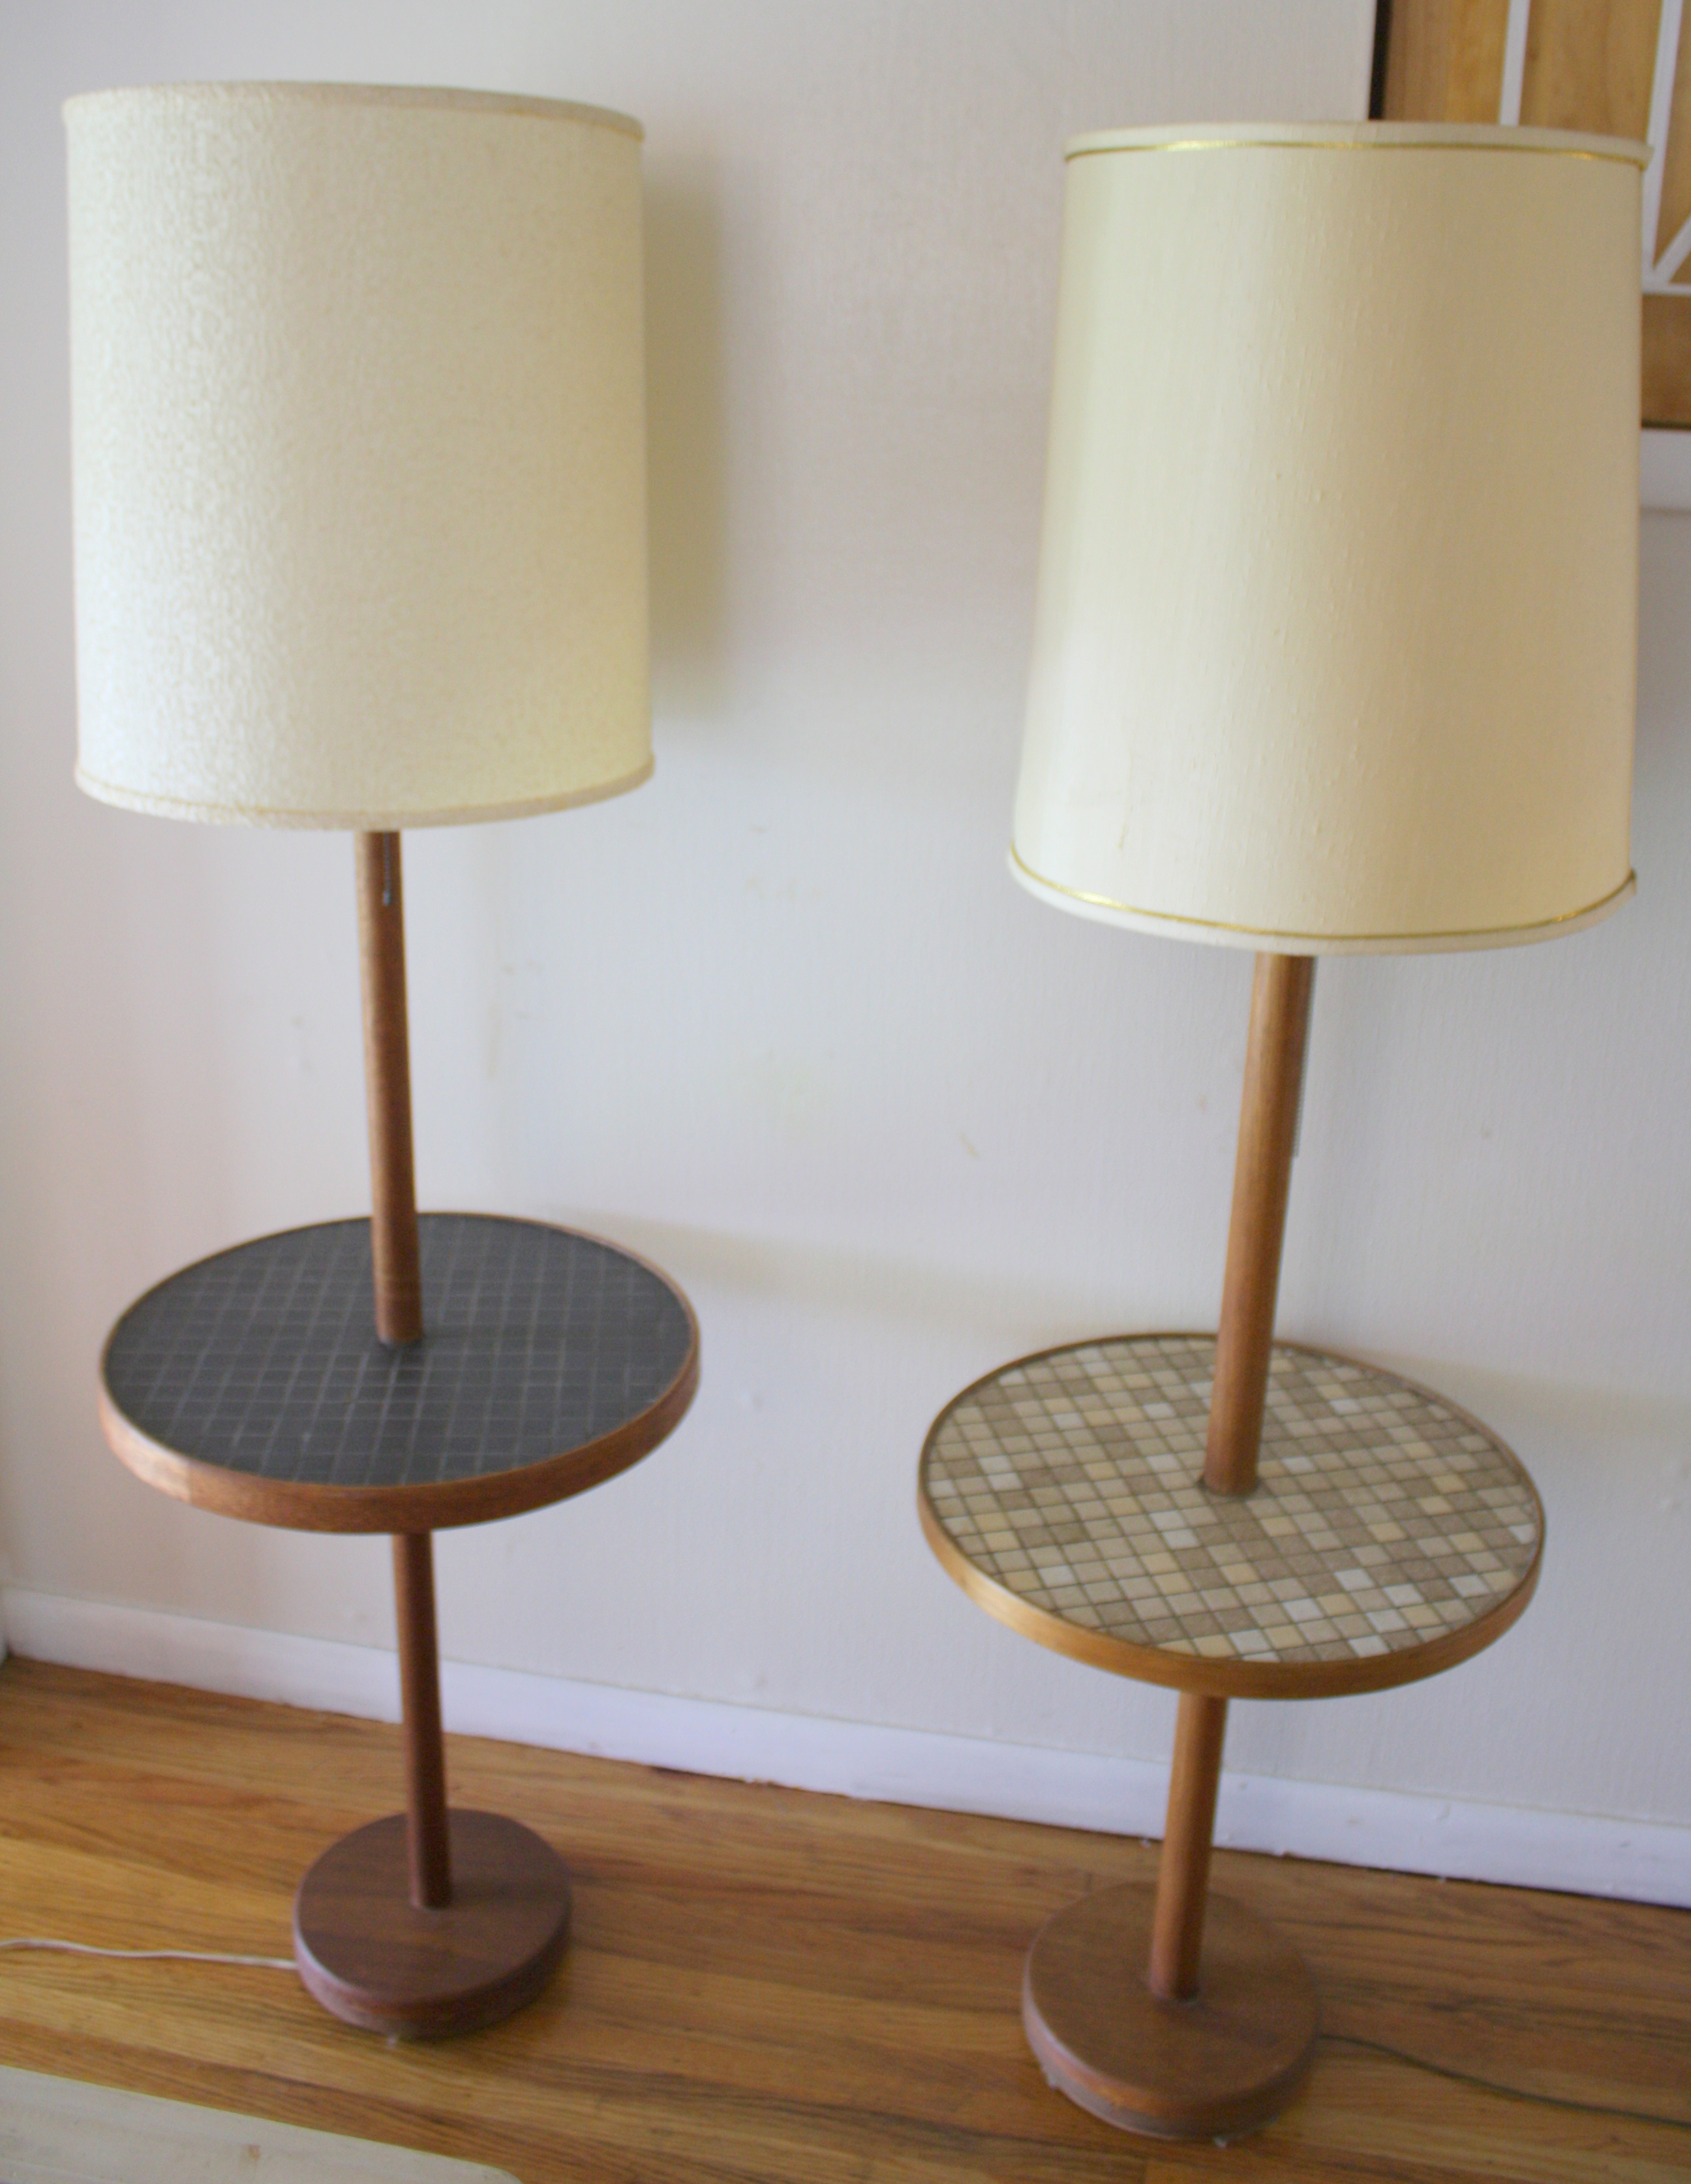 Floor Table Lamps Mid Century Modern Floor Lamps With Tile Top Tables Picked Vintage